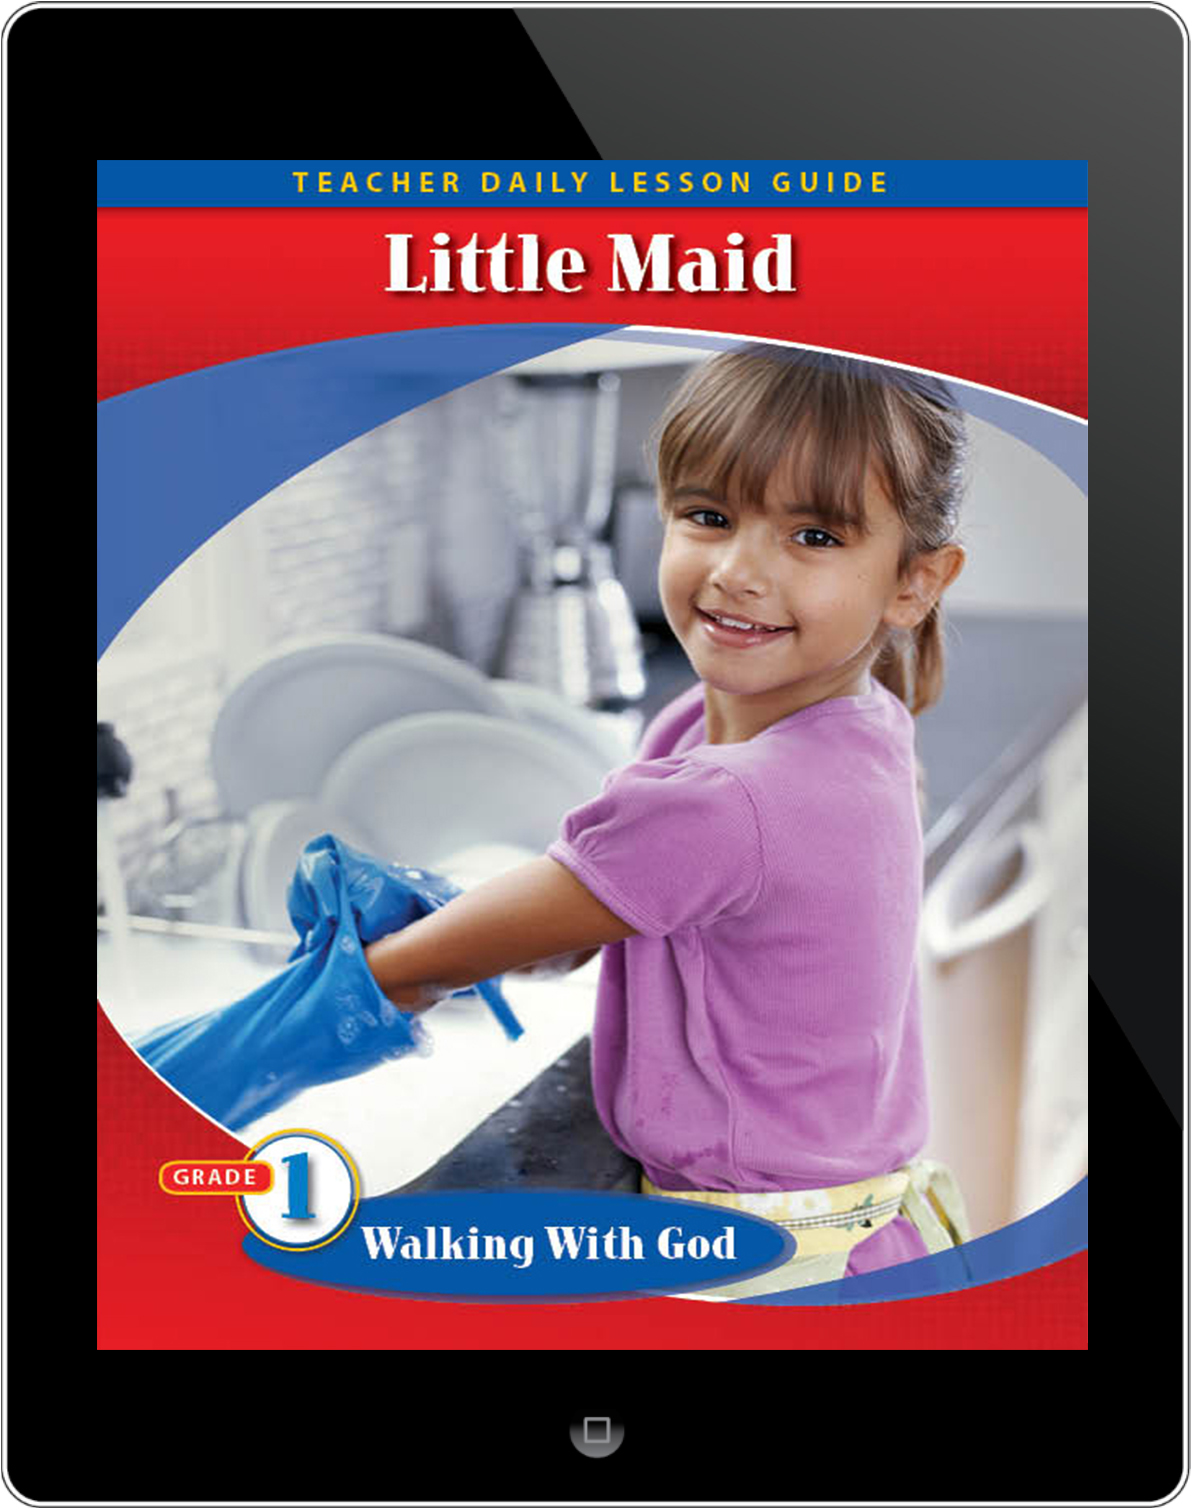 Pathways2.0 Grade 1 Walking with God Unit: Little Maid Daily Lesson Guide 5 Year License